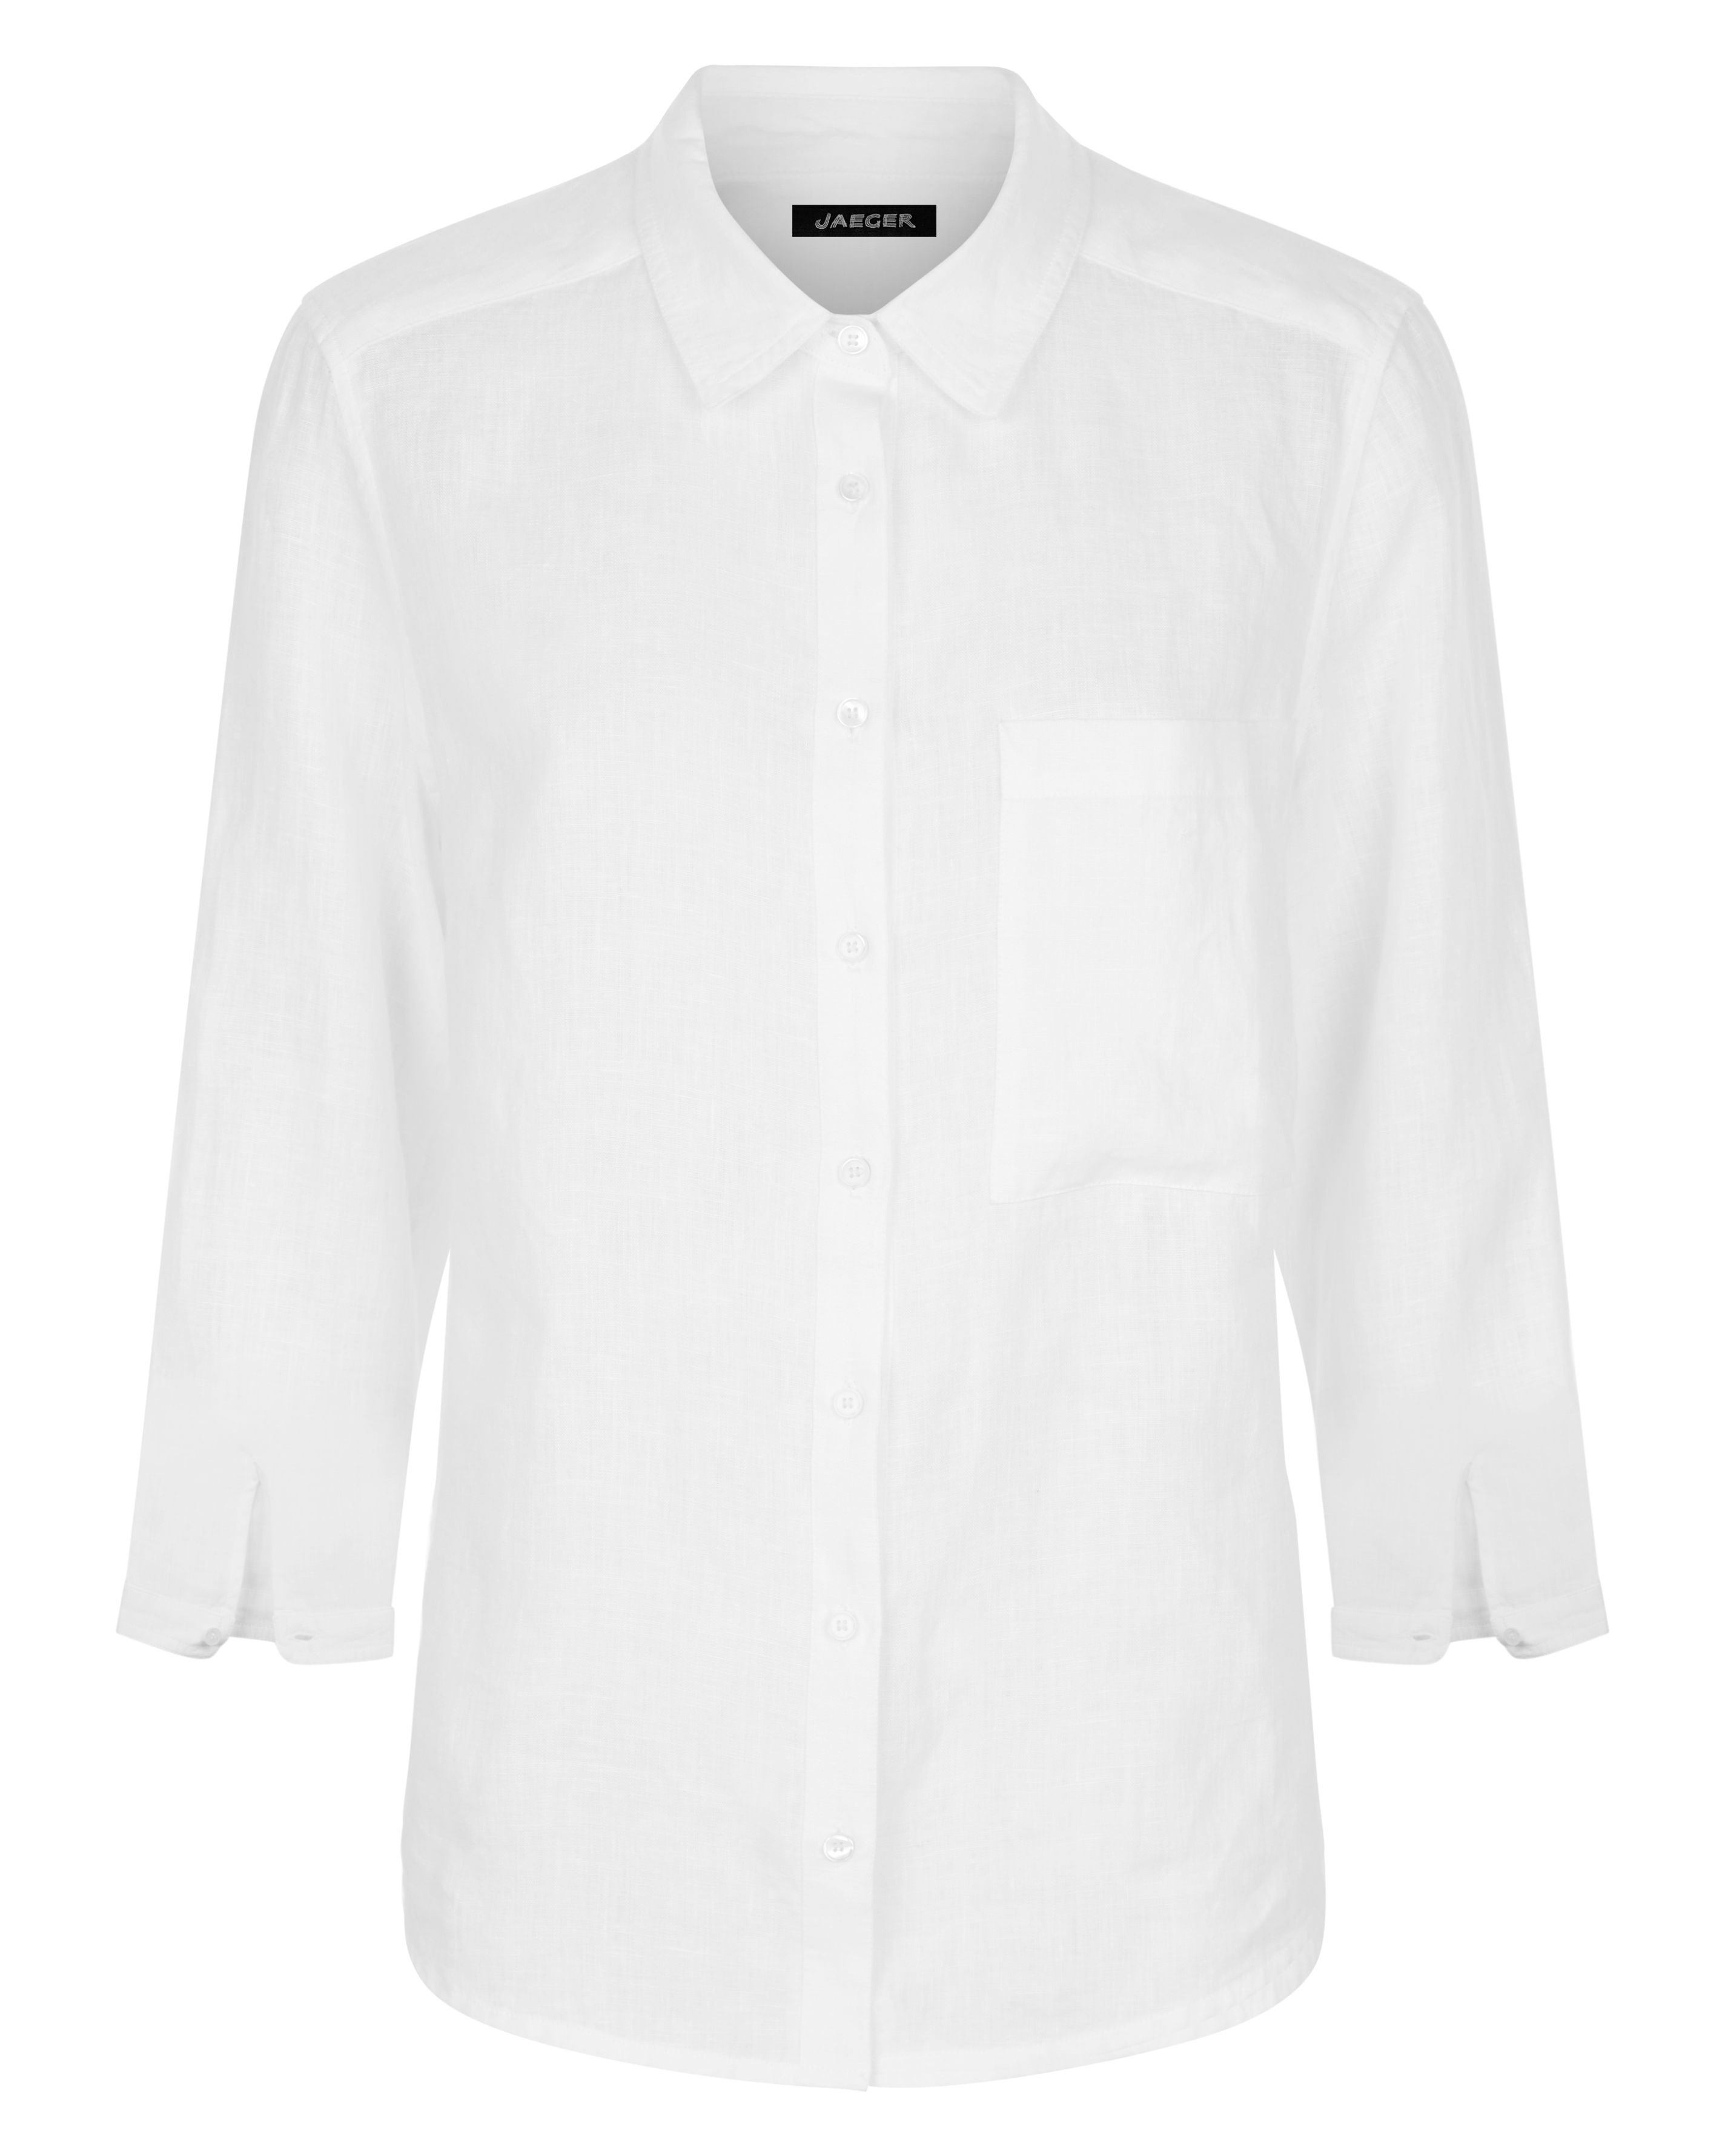 Jaeger Linen Roll Sleeve Shirt, White